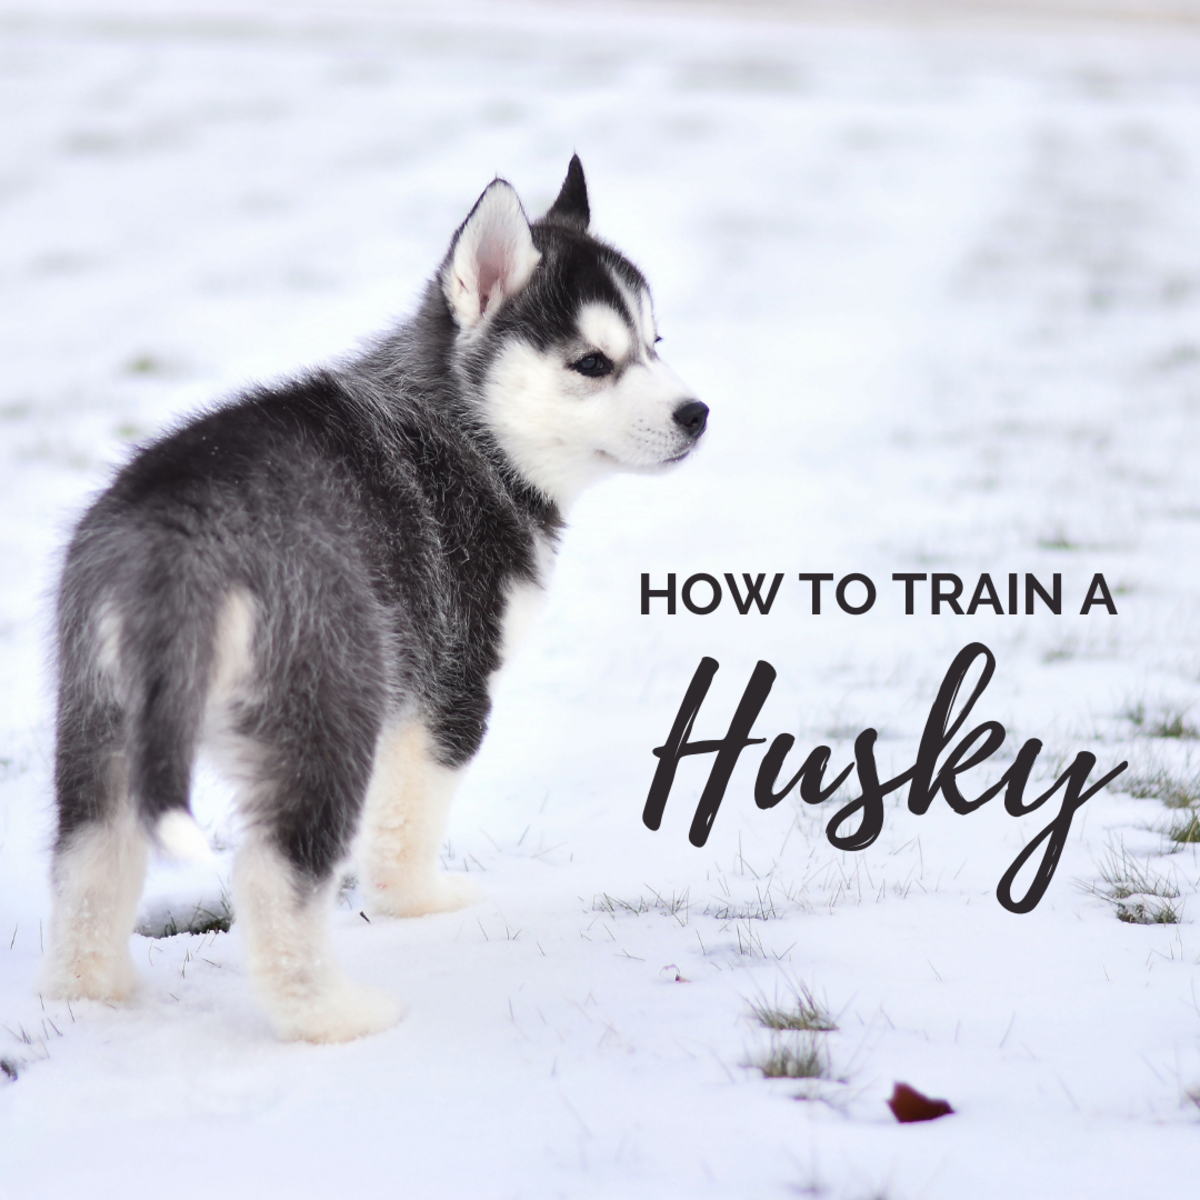 5 principles to follow when training your husky